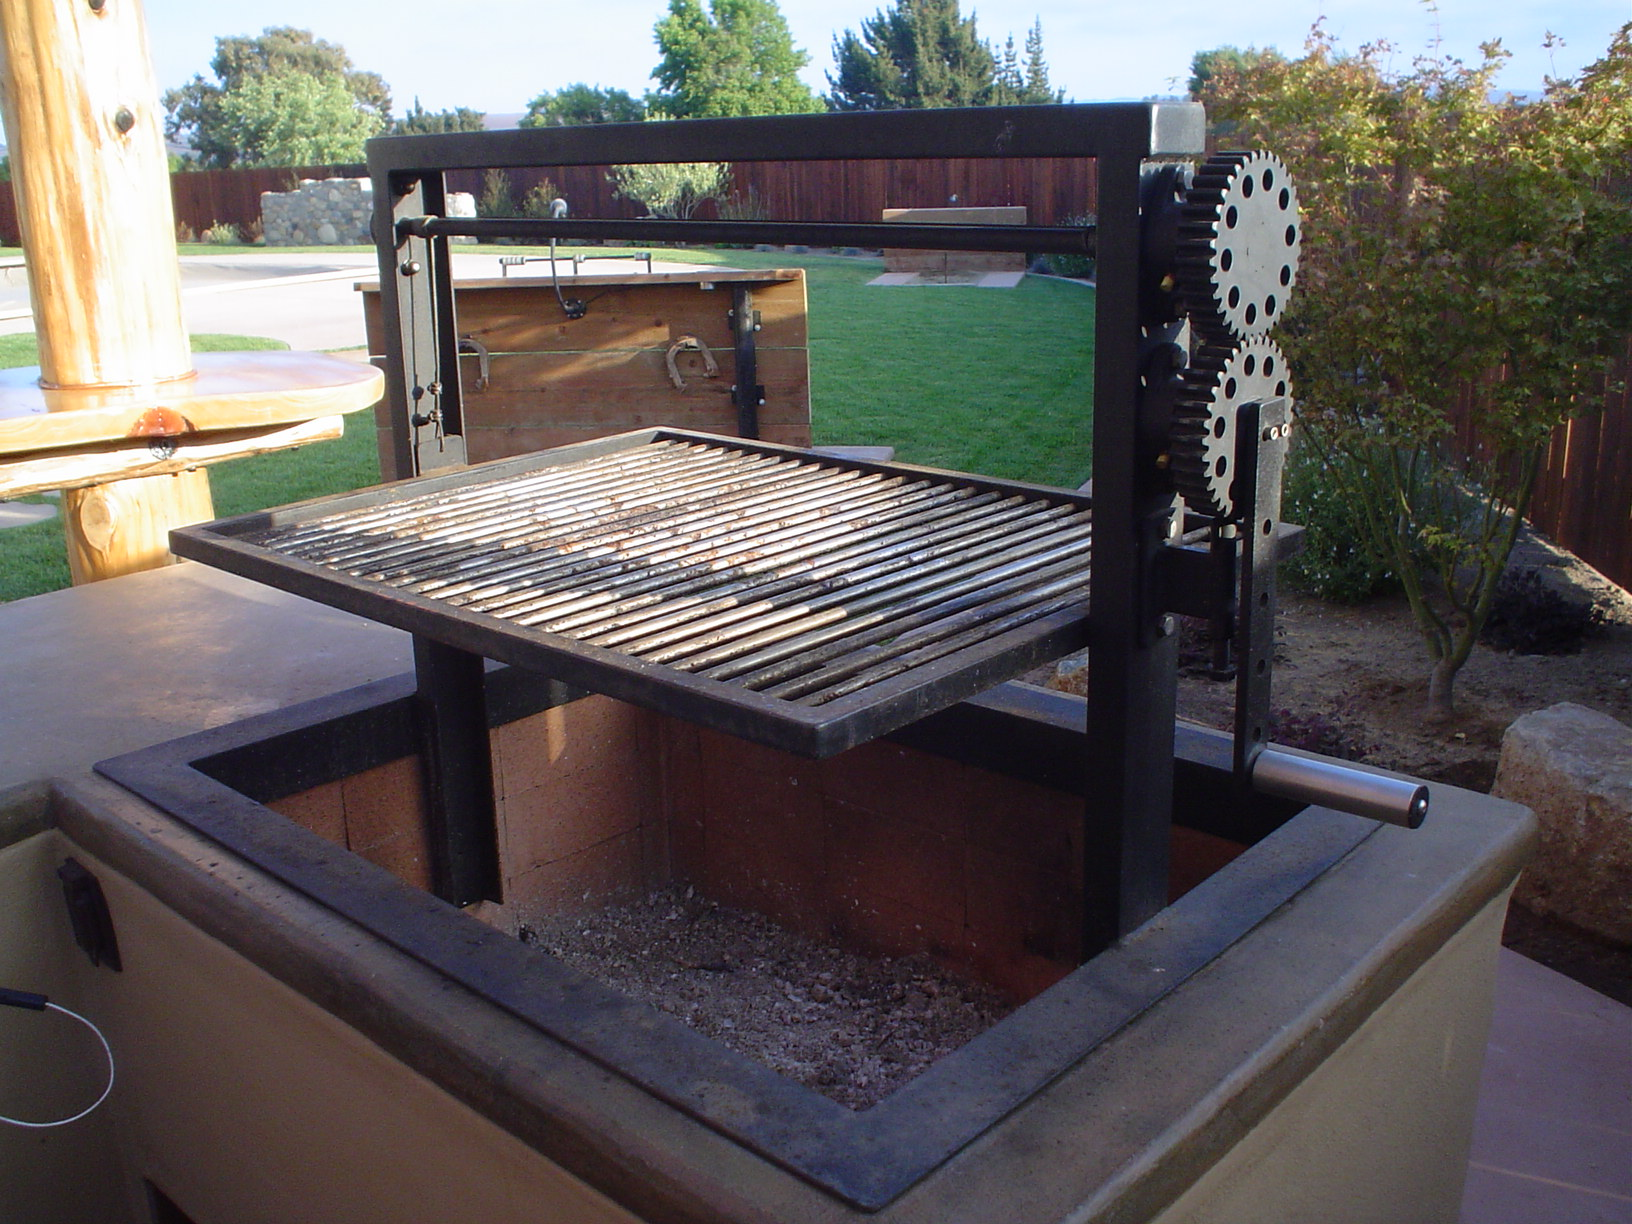 1000 images about bbq grills on pinterest santa maria for Bbq grill designs and plans